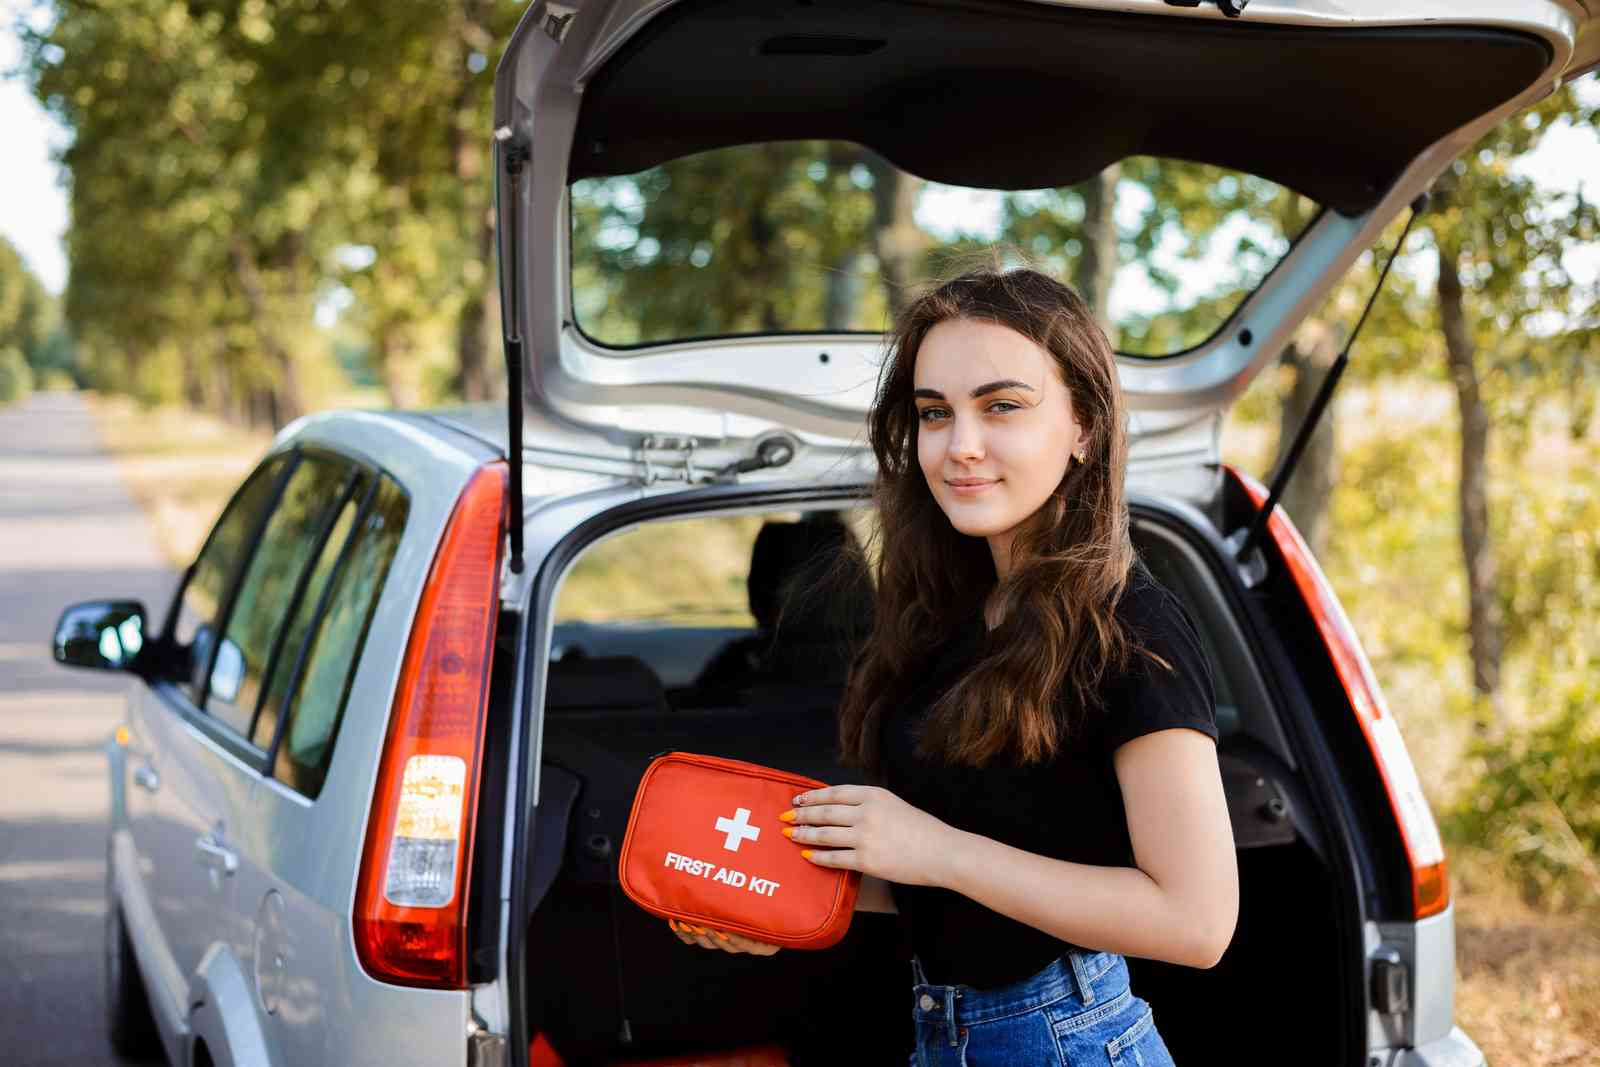 A woman with a first aid kit (Shutterstock)